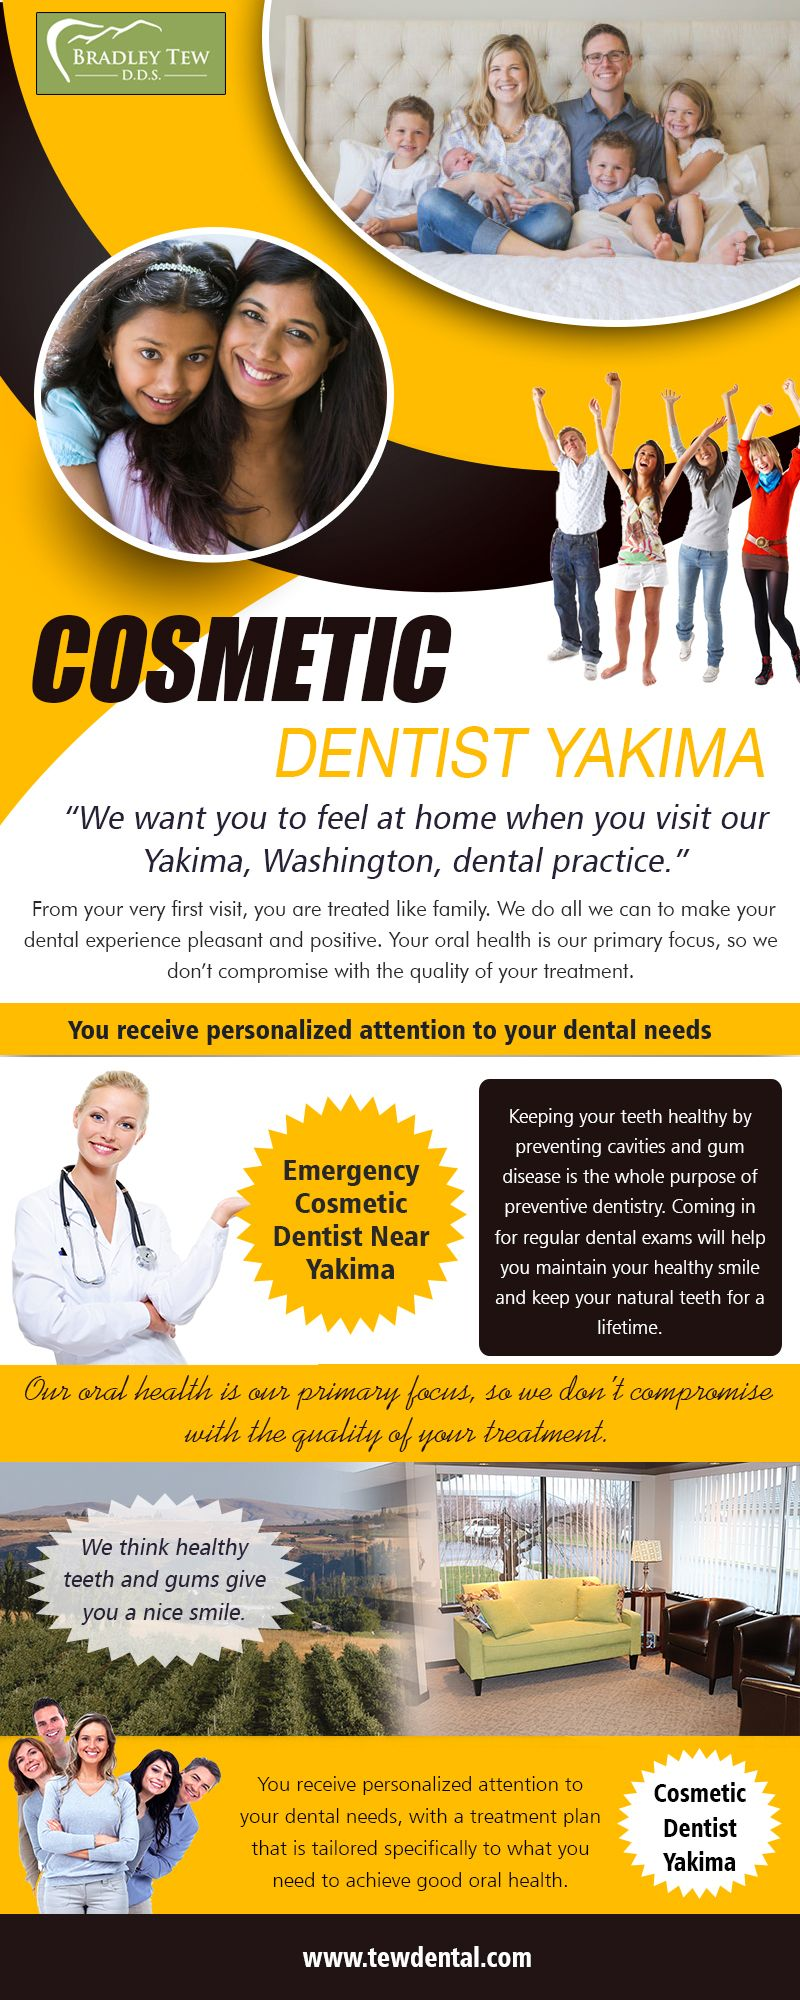 Cosmetic dentist in Yakima services to create a flawless